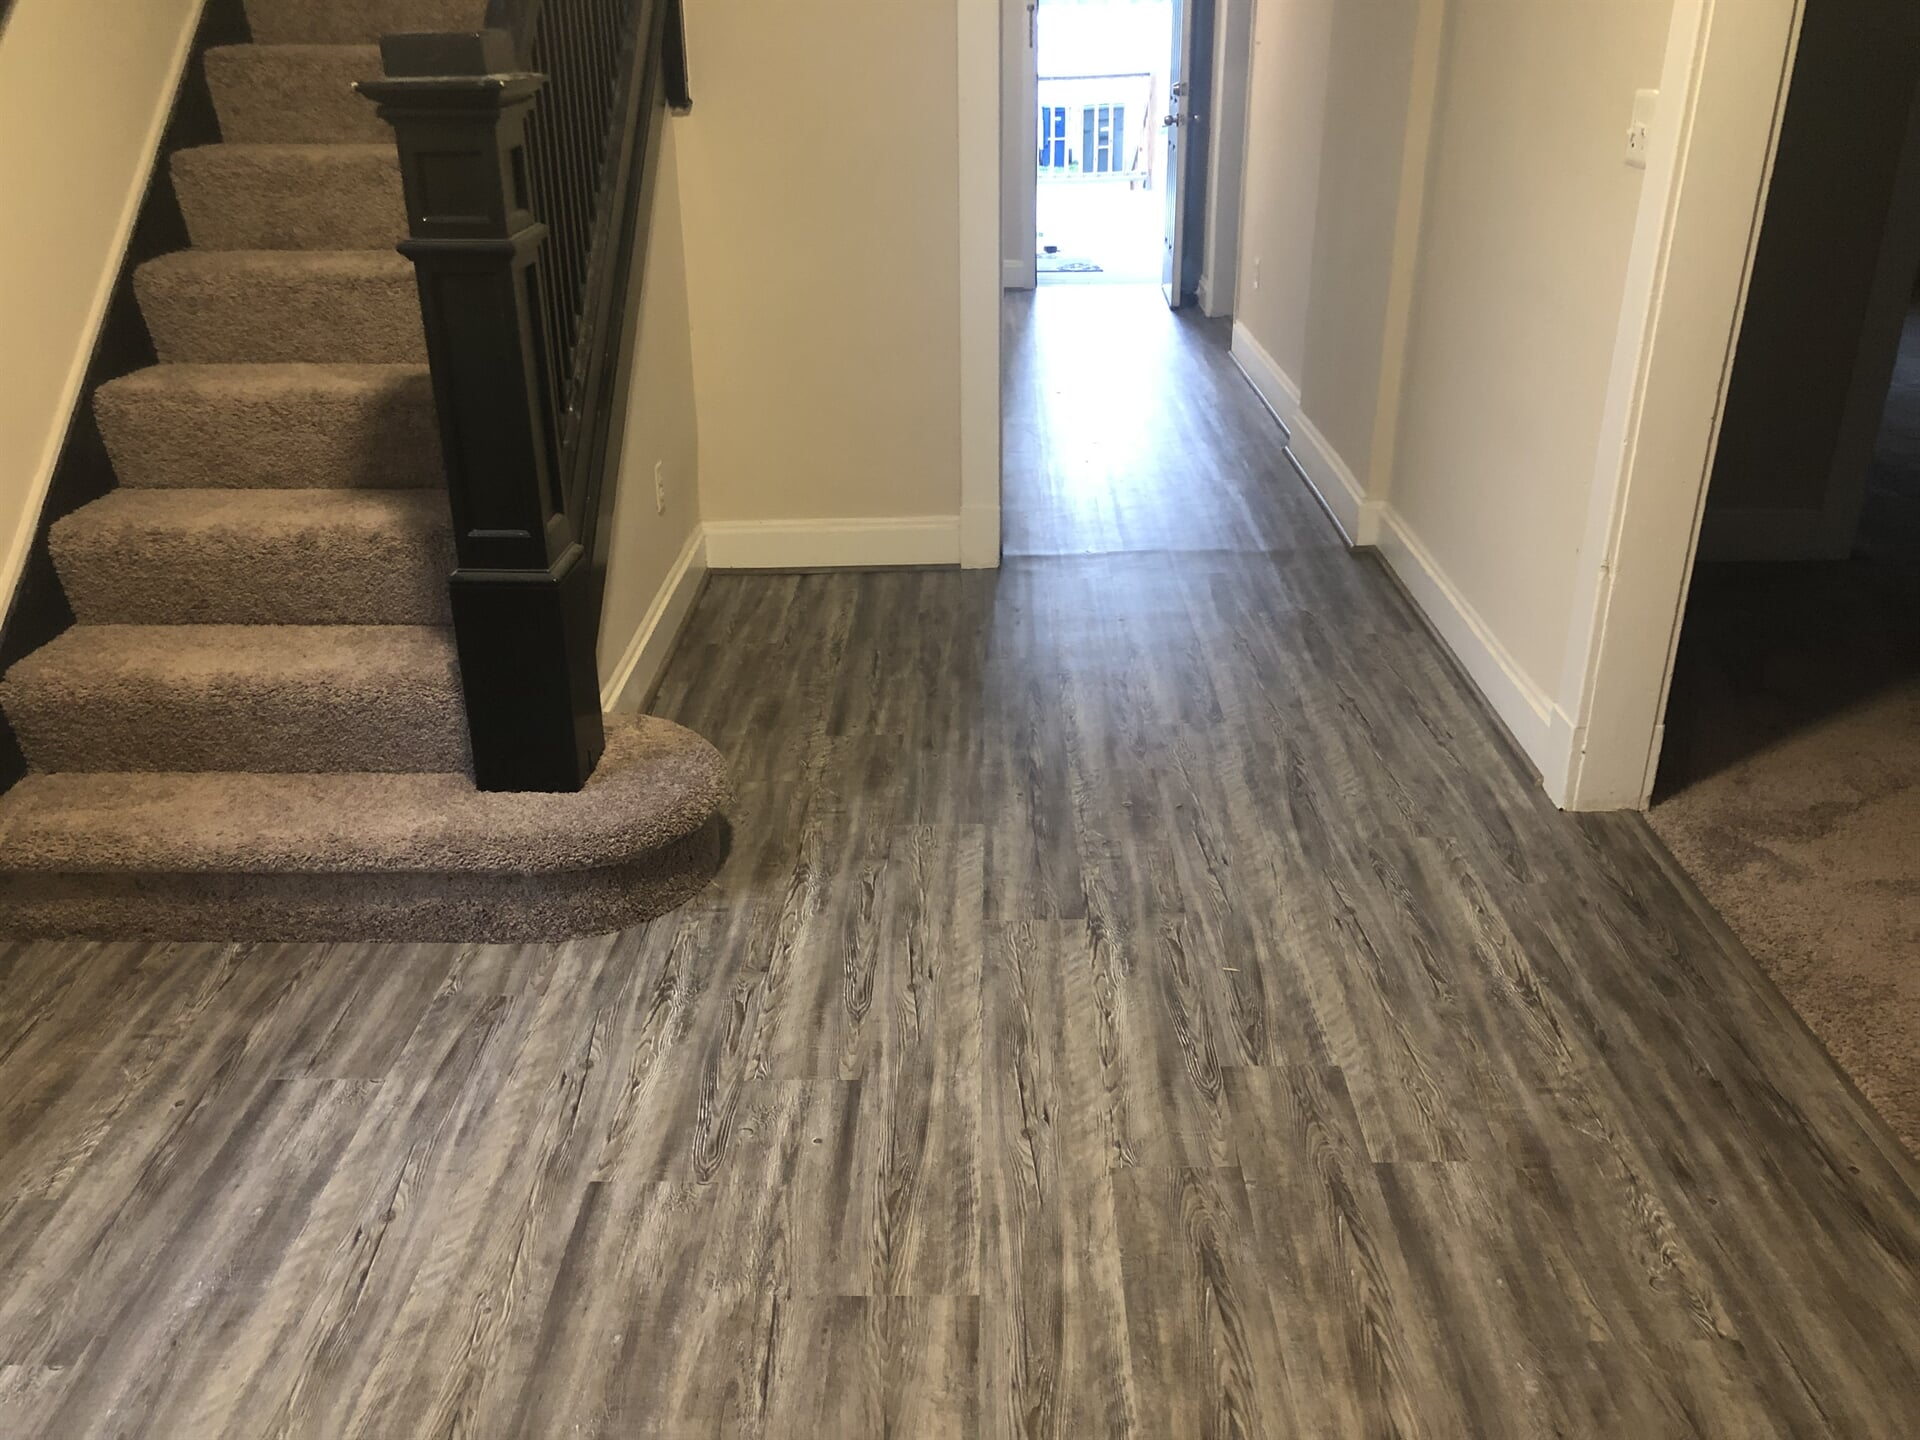 Modern laminate flooring in Washington, DC from Andonian's Carpet Warehouse